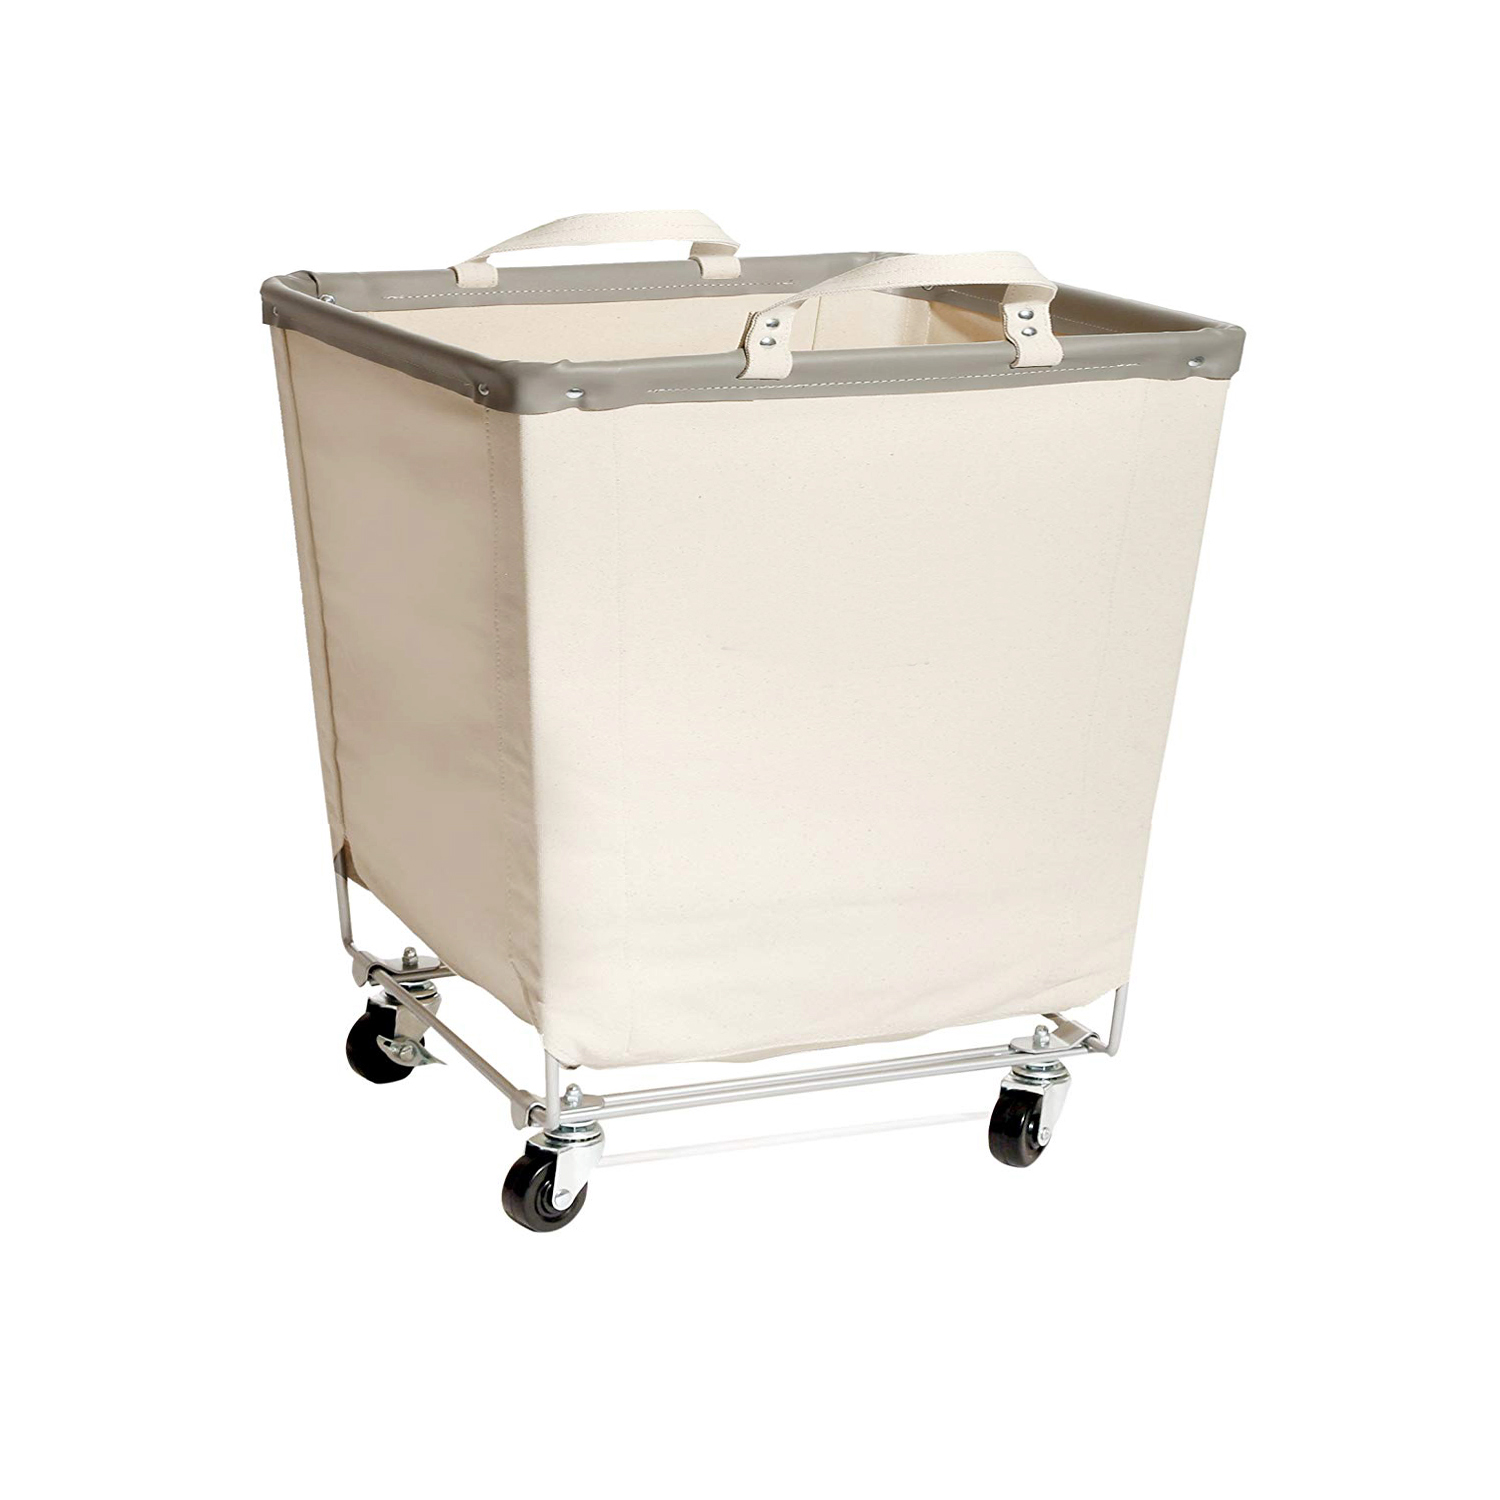 Clothes Basket Rolling Laundry Canvas Laundry Hamper With Wheels